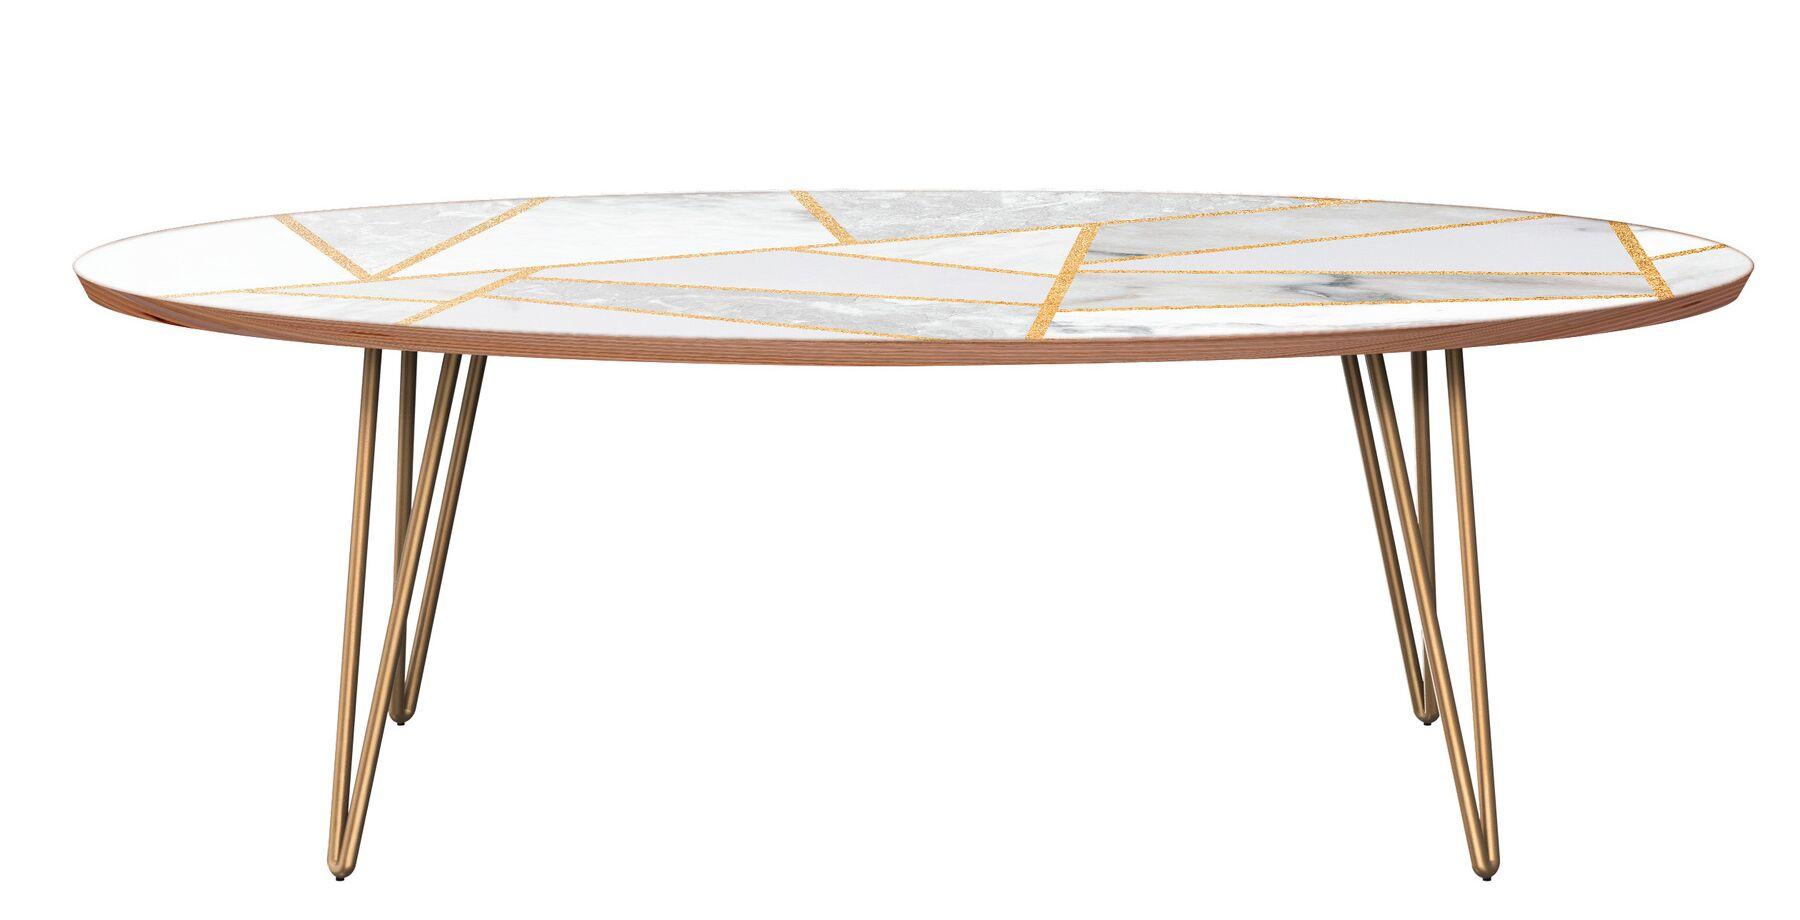 Mcgill Coffee Table Table Base Color: Brass, Table Top Color: Walnut/White